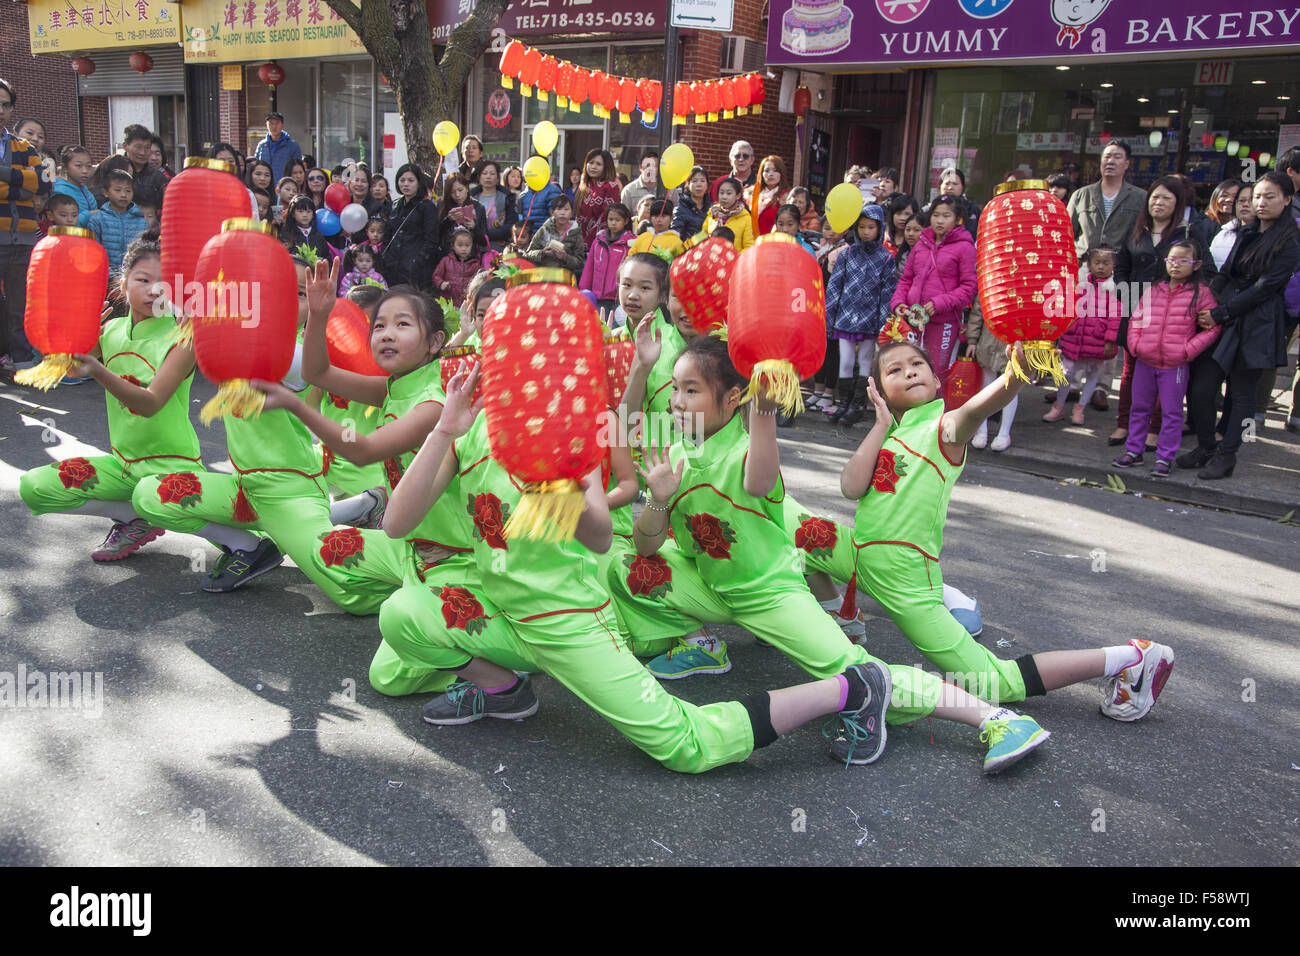 Children's dance troupe perform at the Chinese Autumn Festival and Lantern Parade in the Chinatown neighborhood - Stock Image